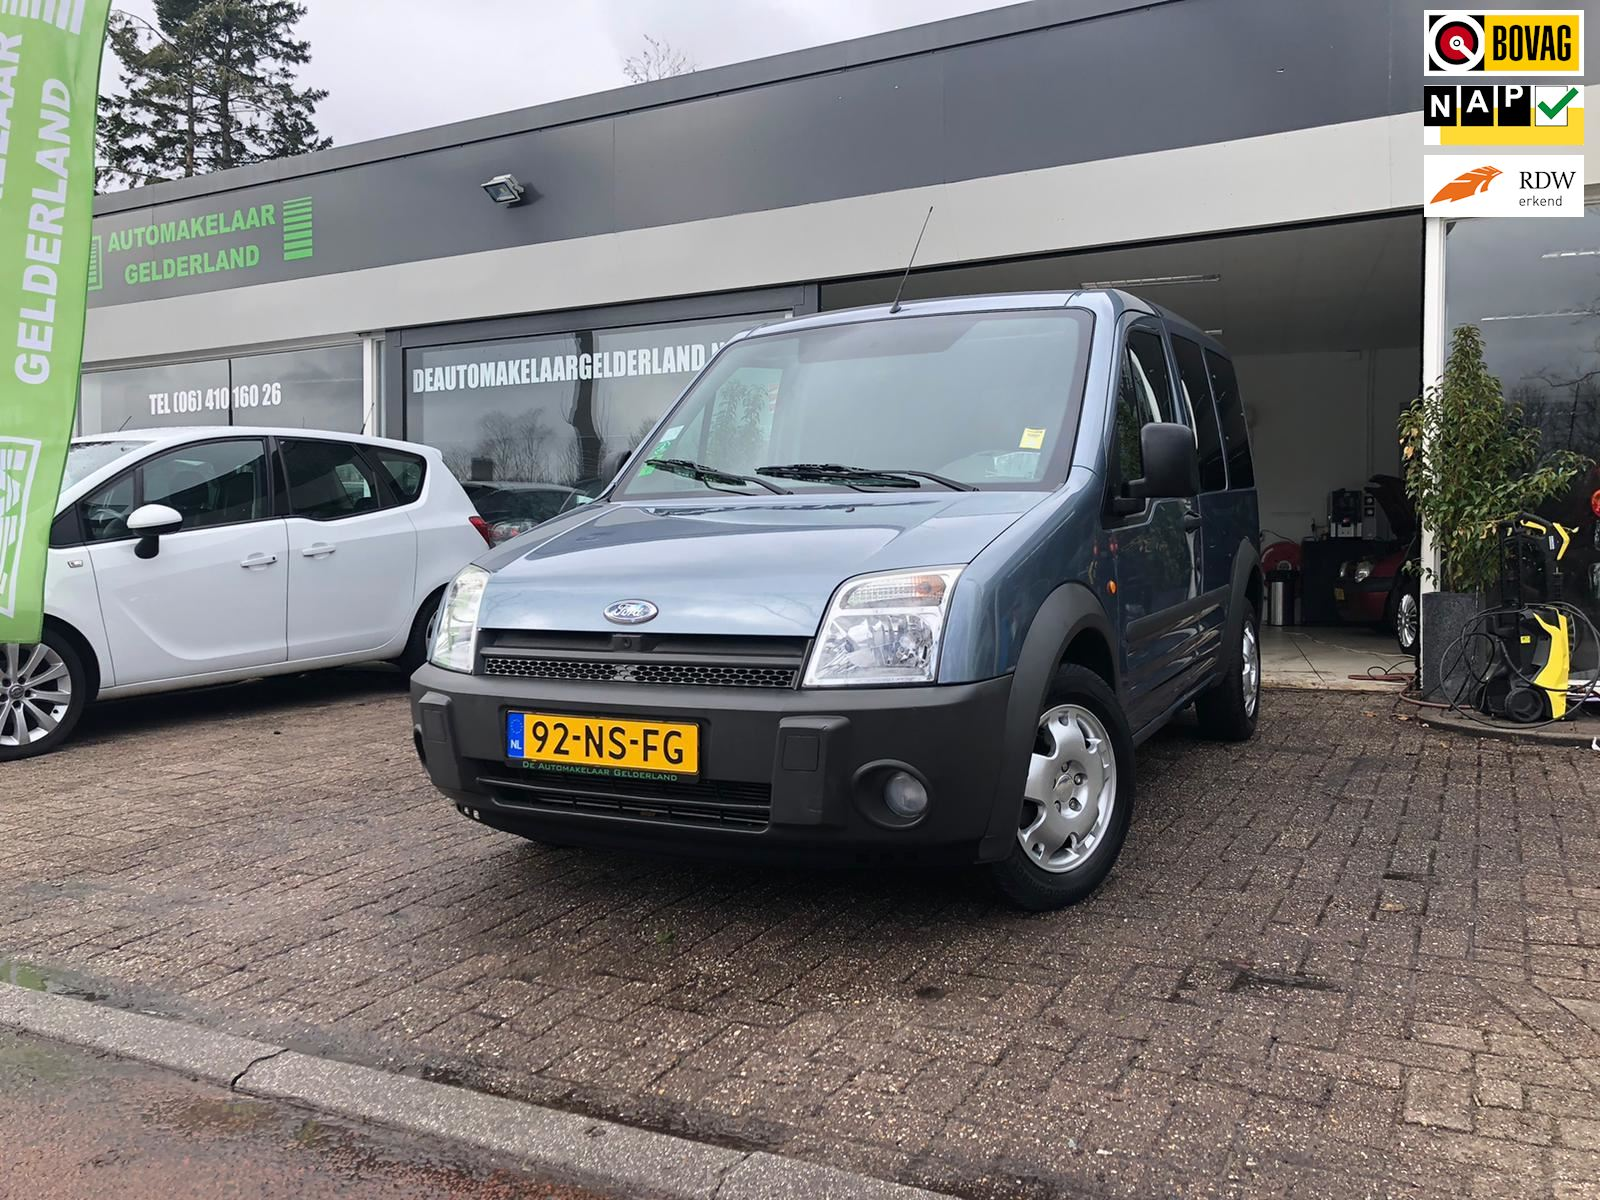 Ford Tourneo Connect occasion - De Automakelaar Gelderland